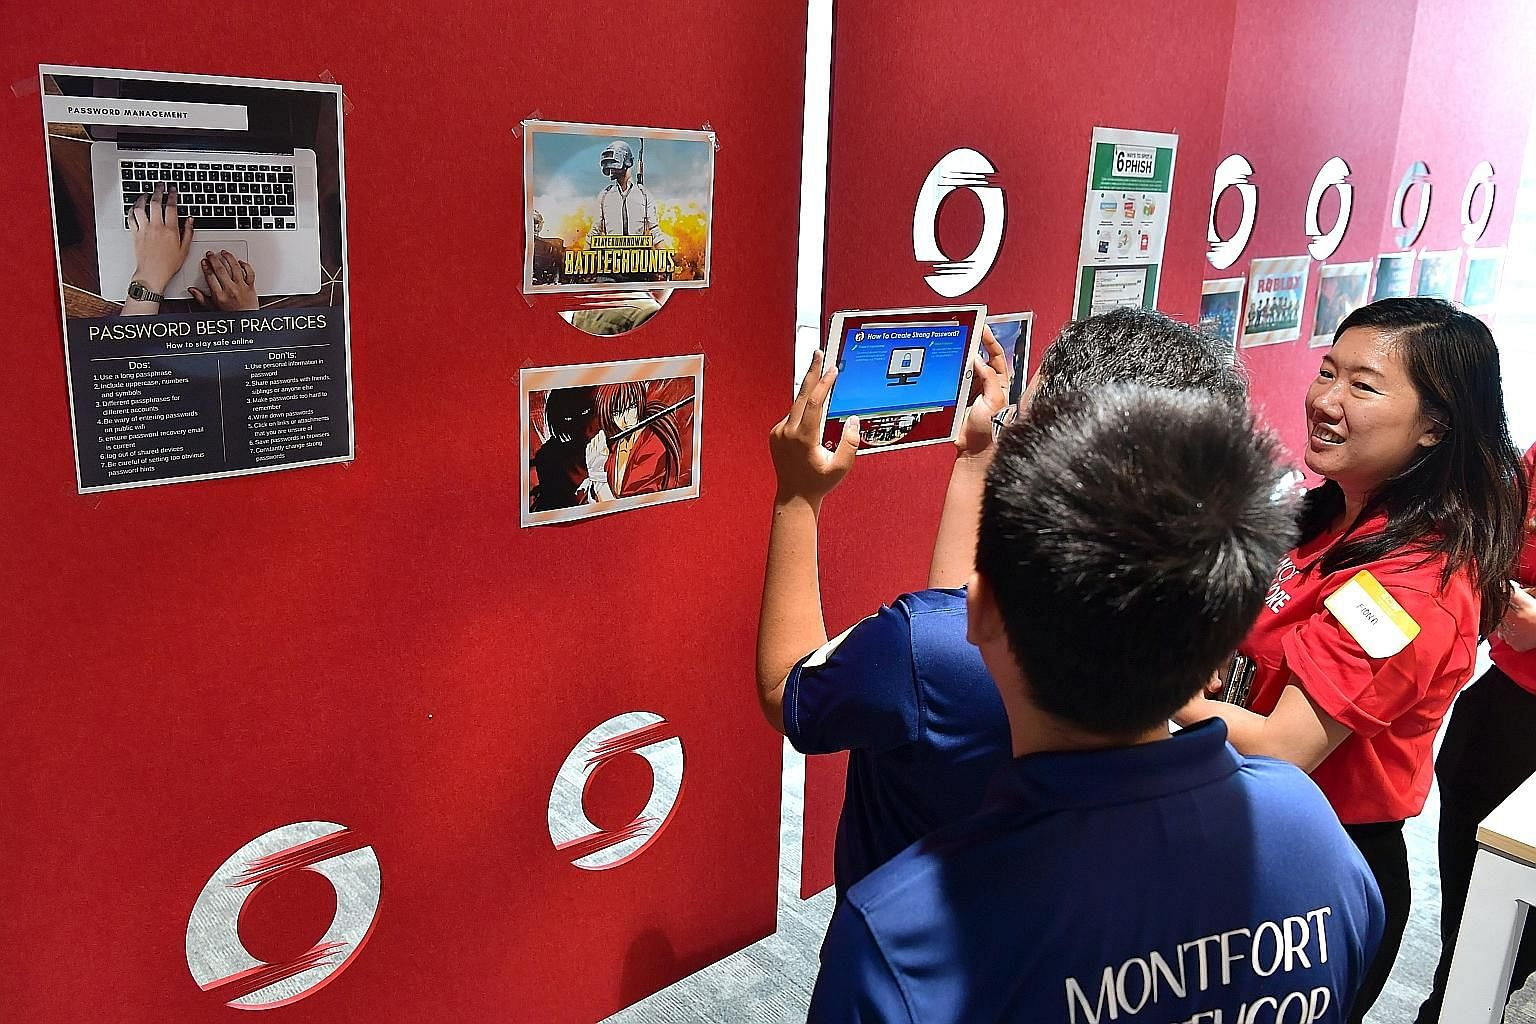 """Participants at the coding and cyber-security workshop at Bank of Singapore's office in Raffles Place yesterday. For the AR activity, students used an app on a tablet to """"scan"""" posters of video games put up on a wall, before watching a video and answ"""